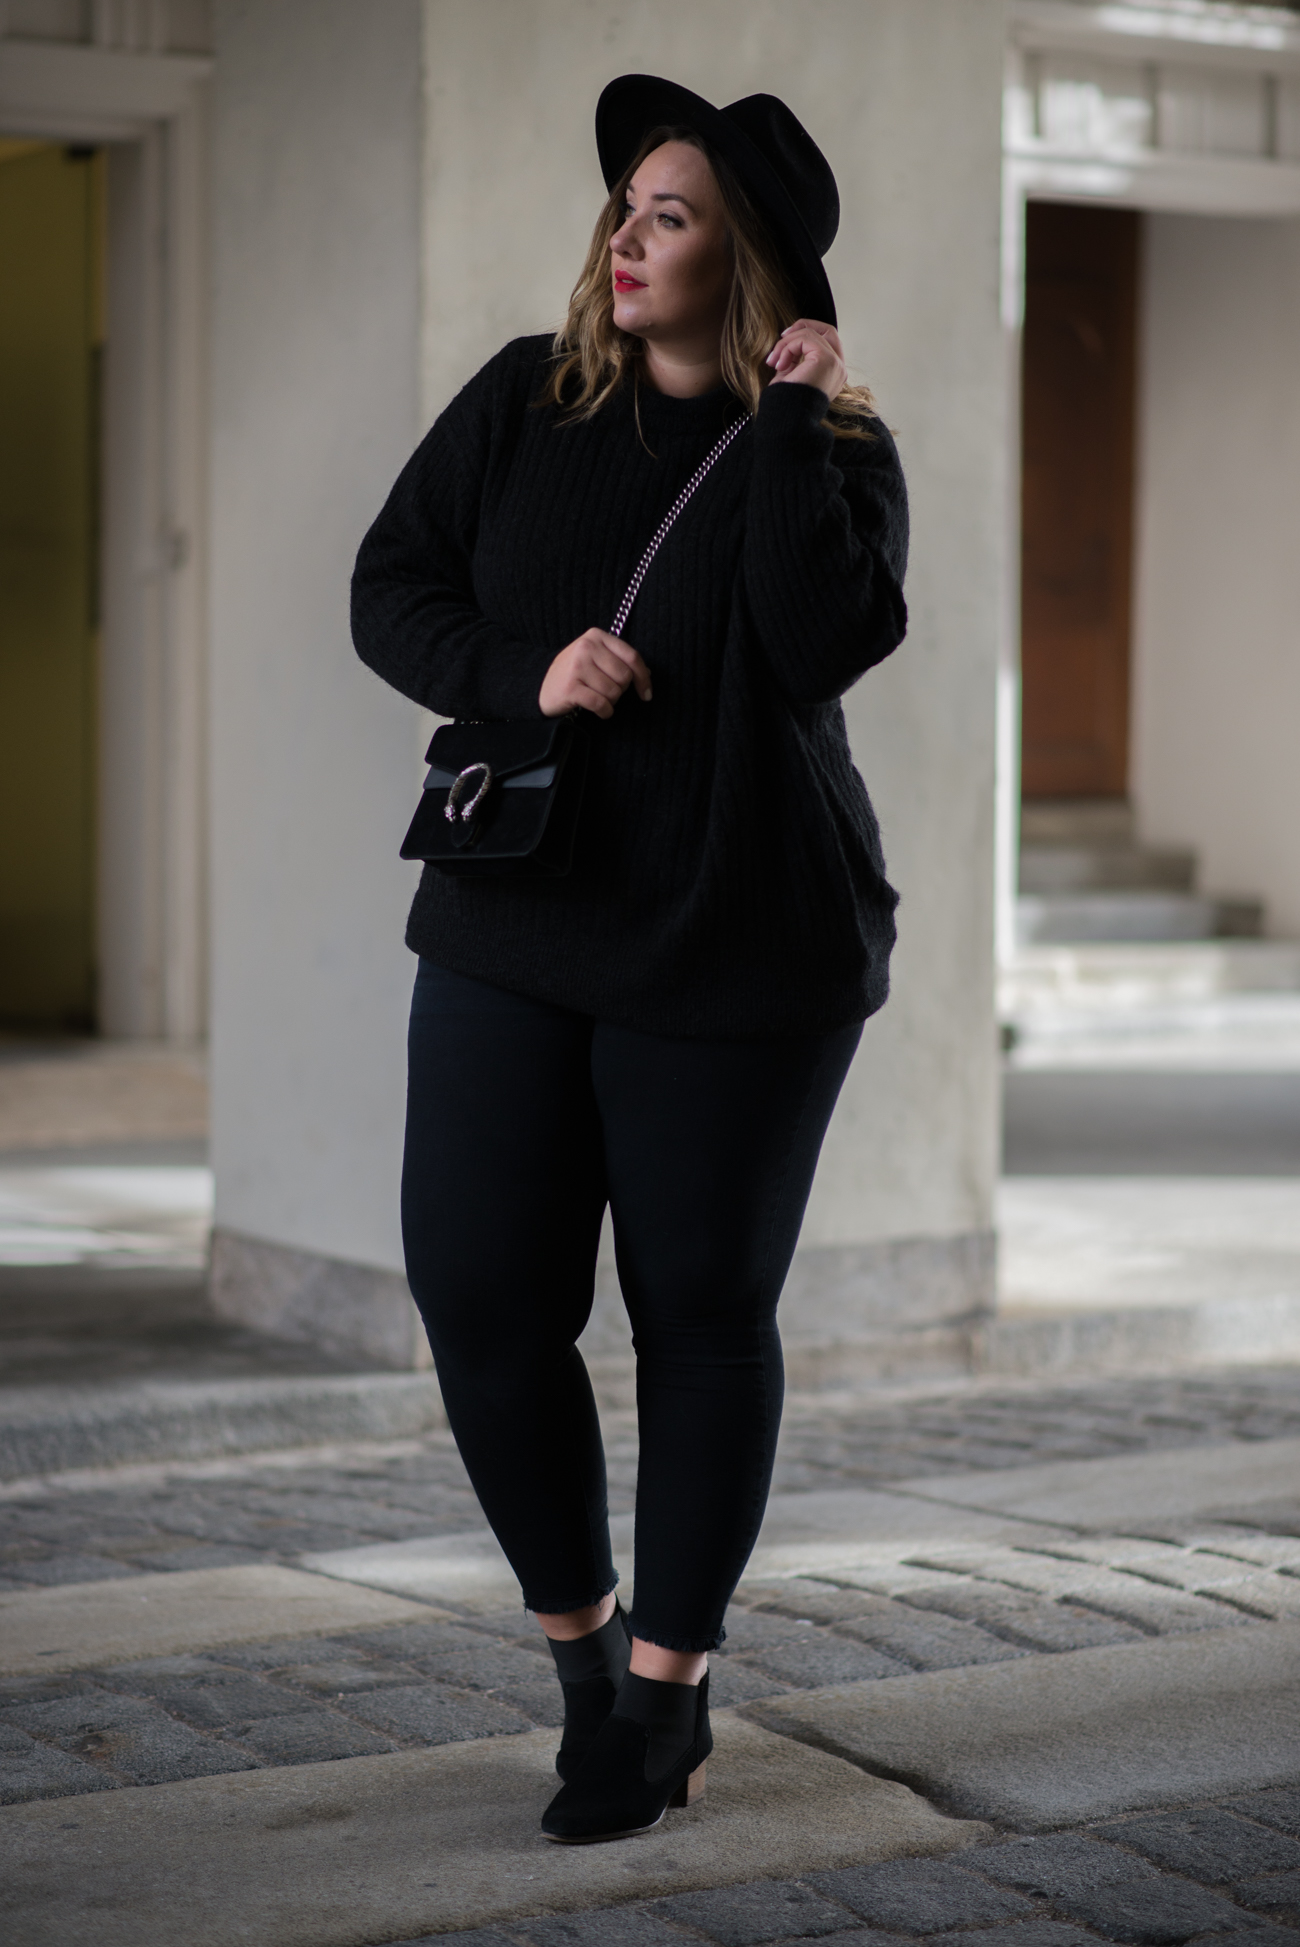 the-skinny-and-the-curvy-one_ms-wunderbar_curvy_plussize-blogger_plus-size-blog-deutschland_curve-blogger_all-black_gucci-dionysus_gucci-dionysus-black-velour-6-von-27